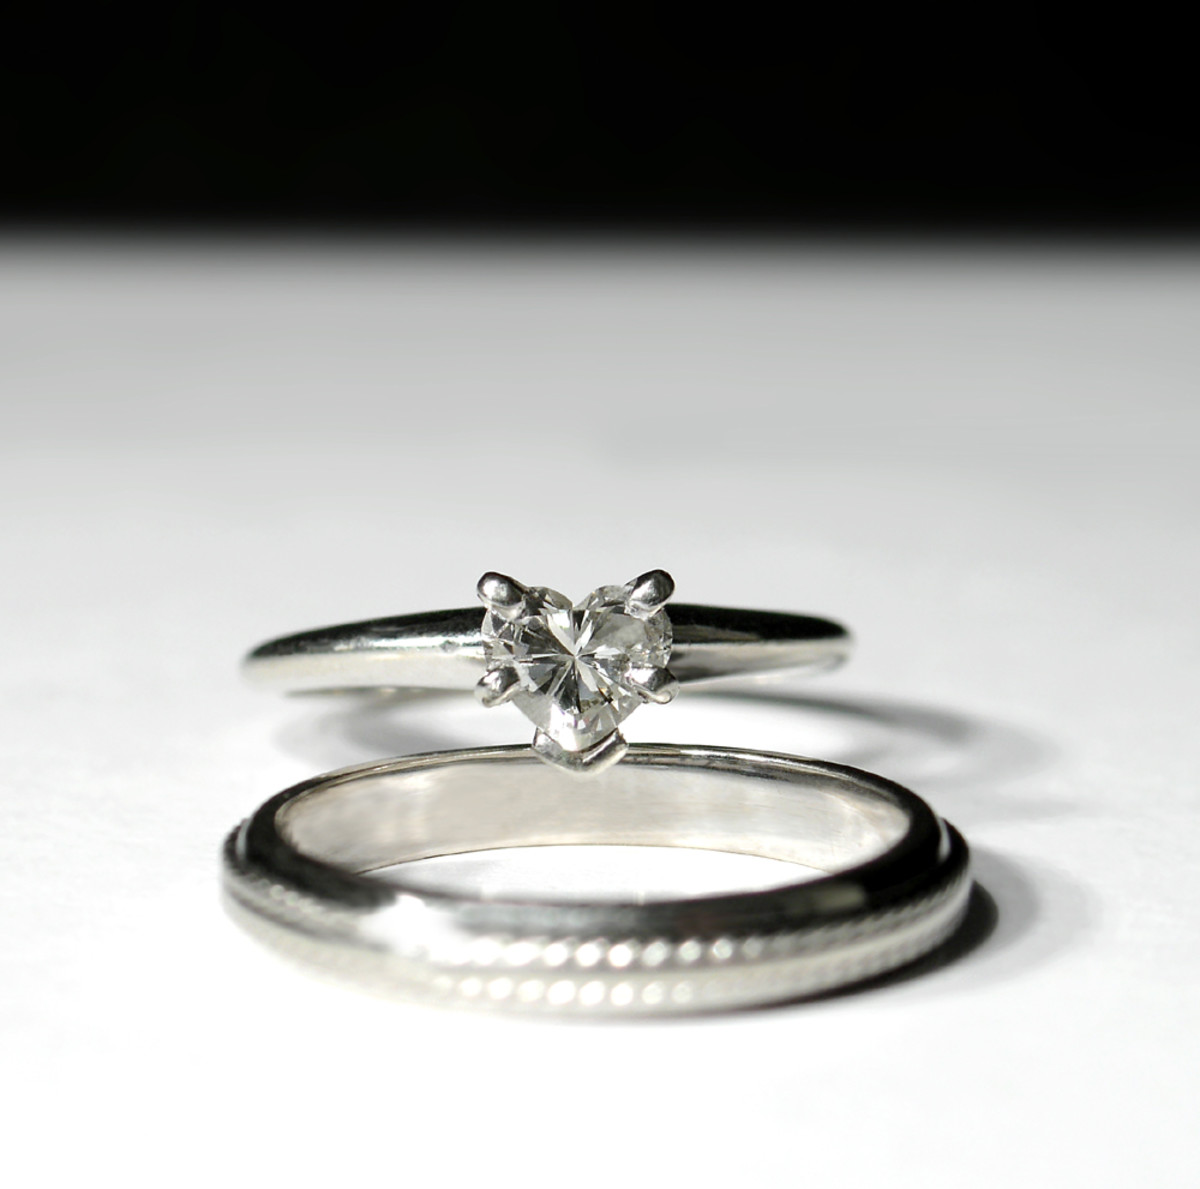 how much are wedding rings how much should an engagement ring cost hubpages 4879